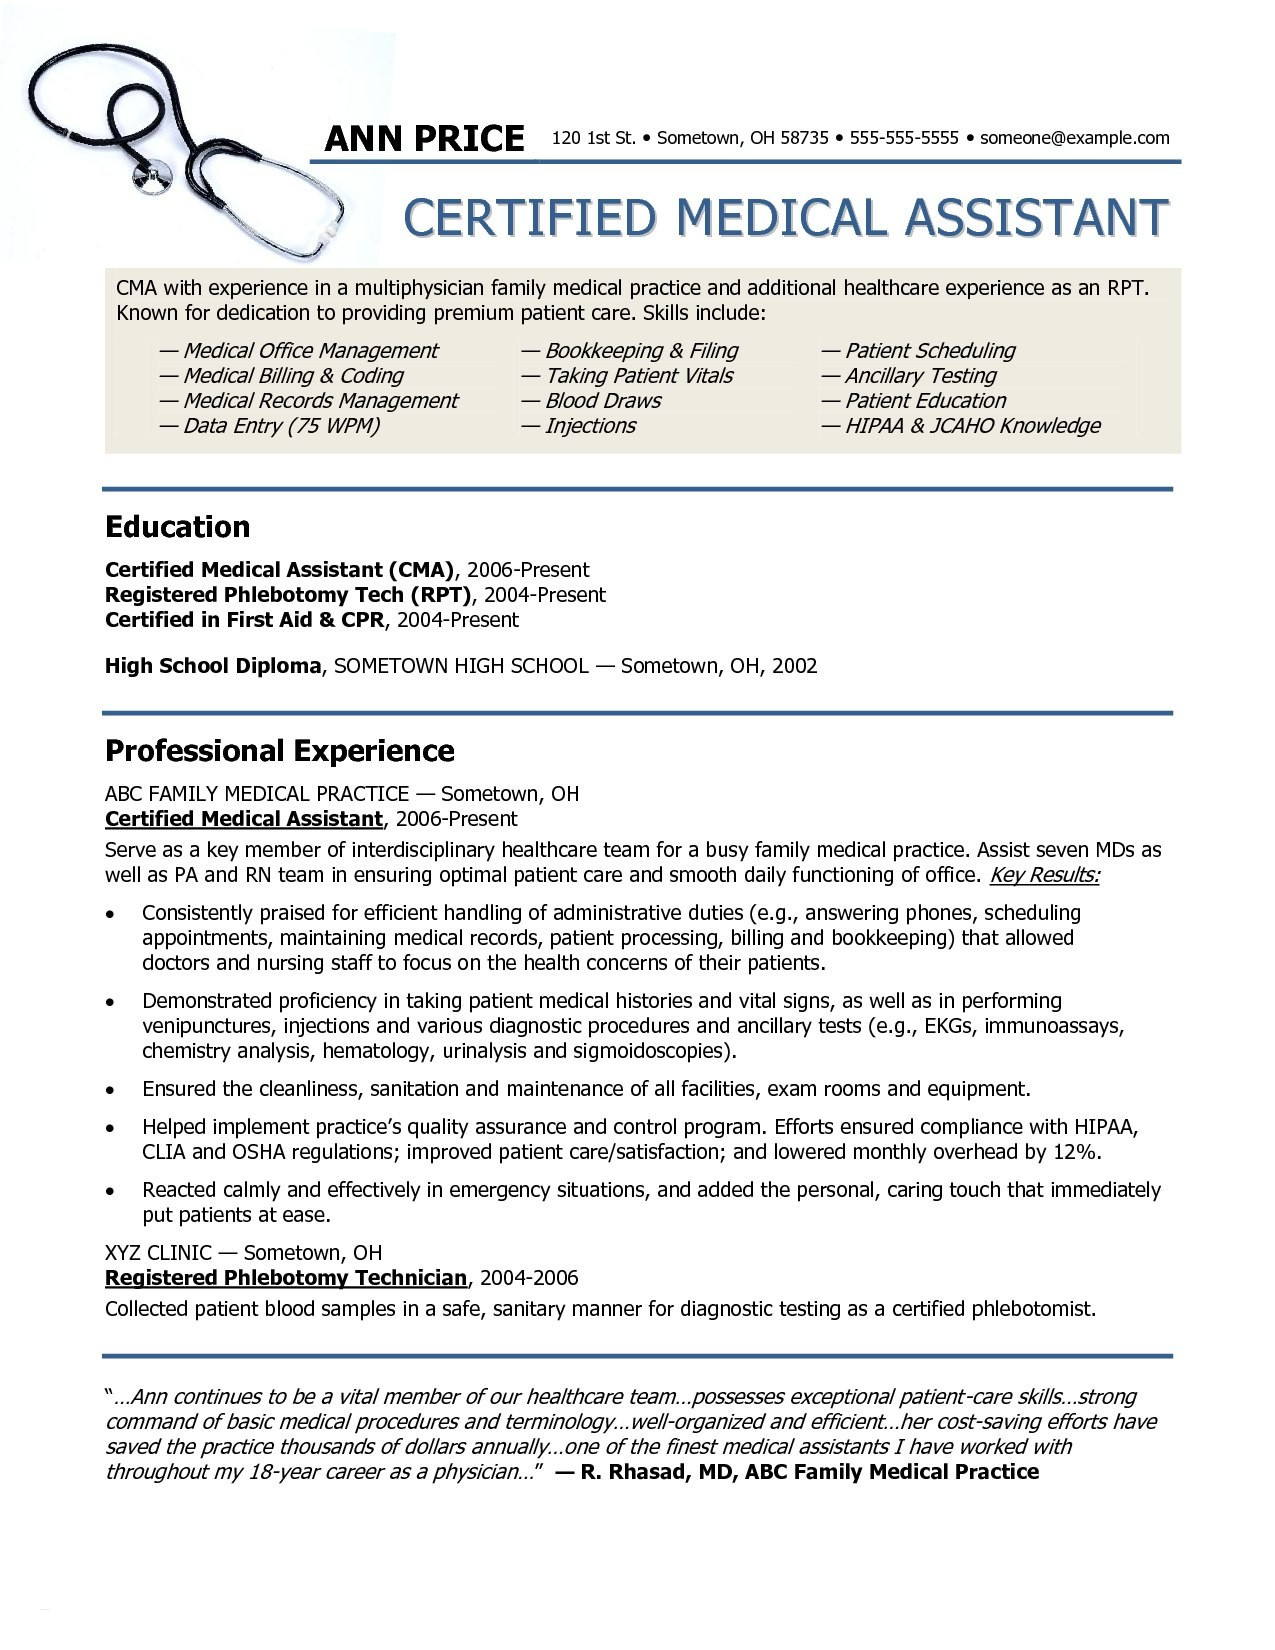 Medical Office assistant Resume - Physician assistant Resume Templates Fresh Admin assistant Resume